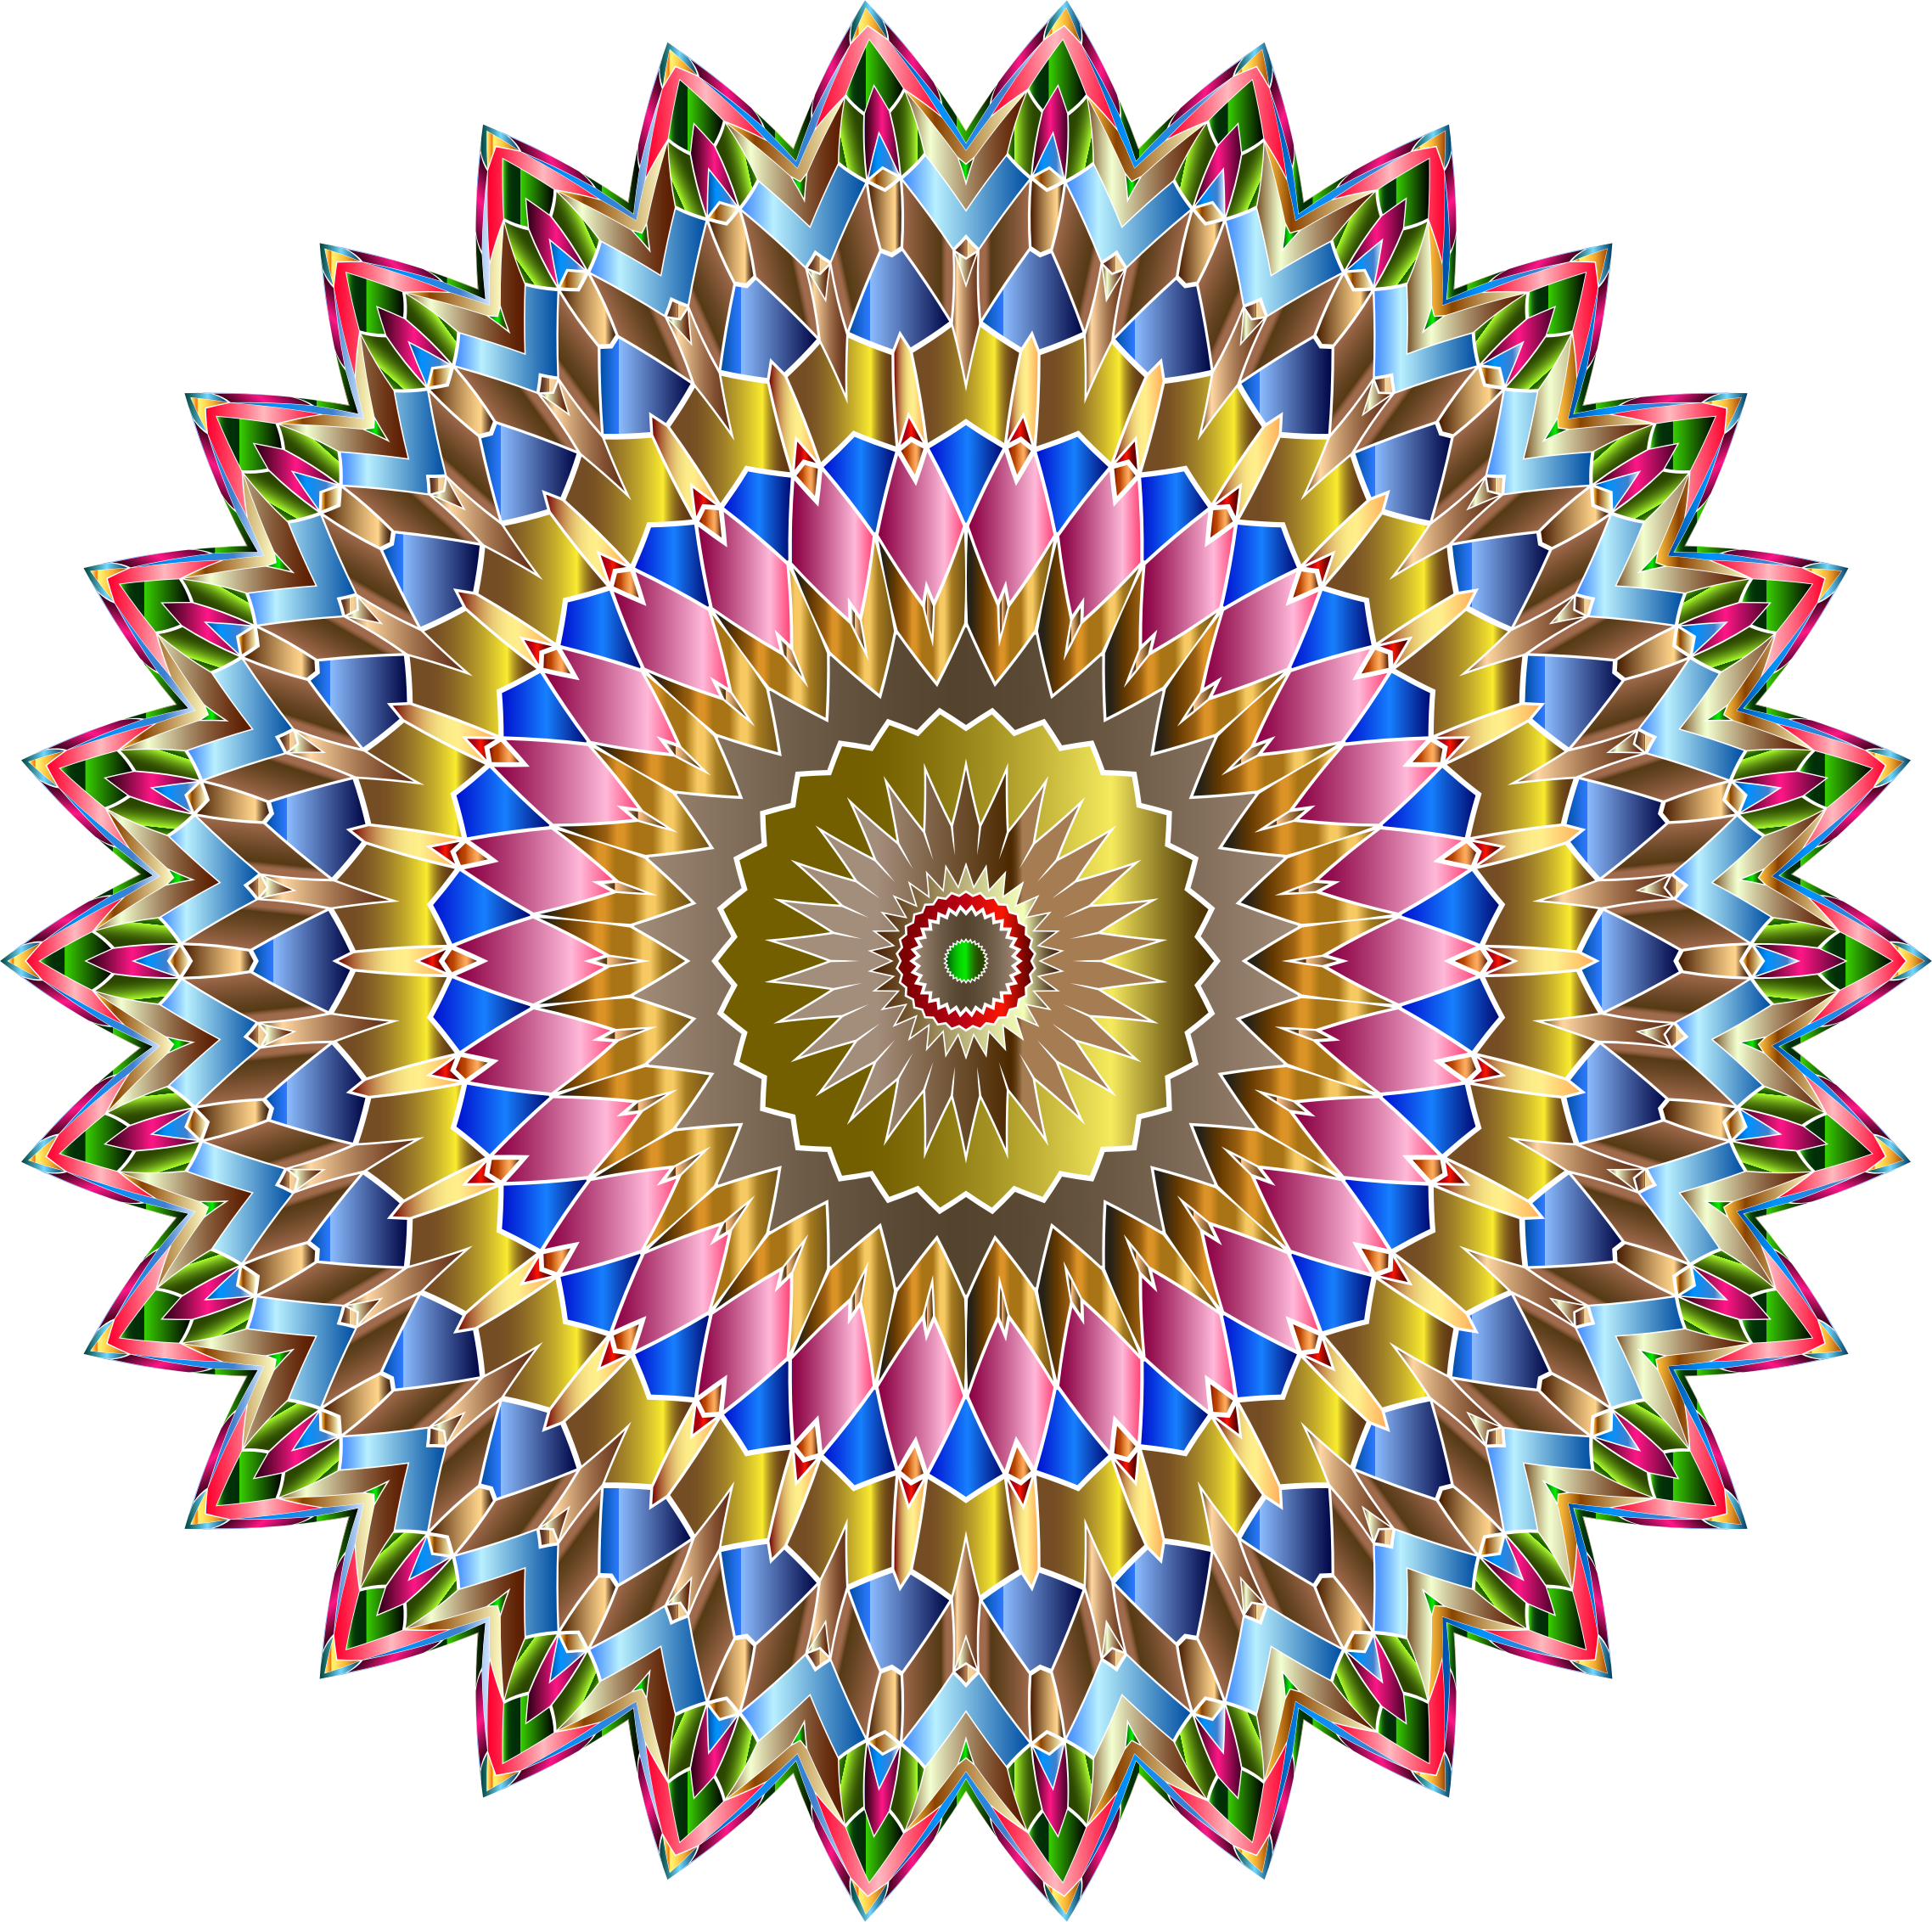 Chromatic Iridescent Mandala by GDJ